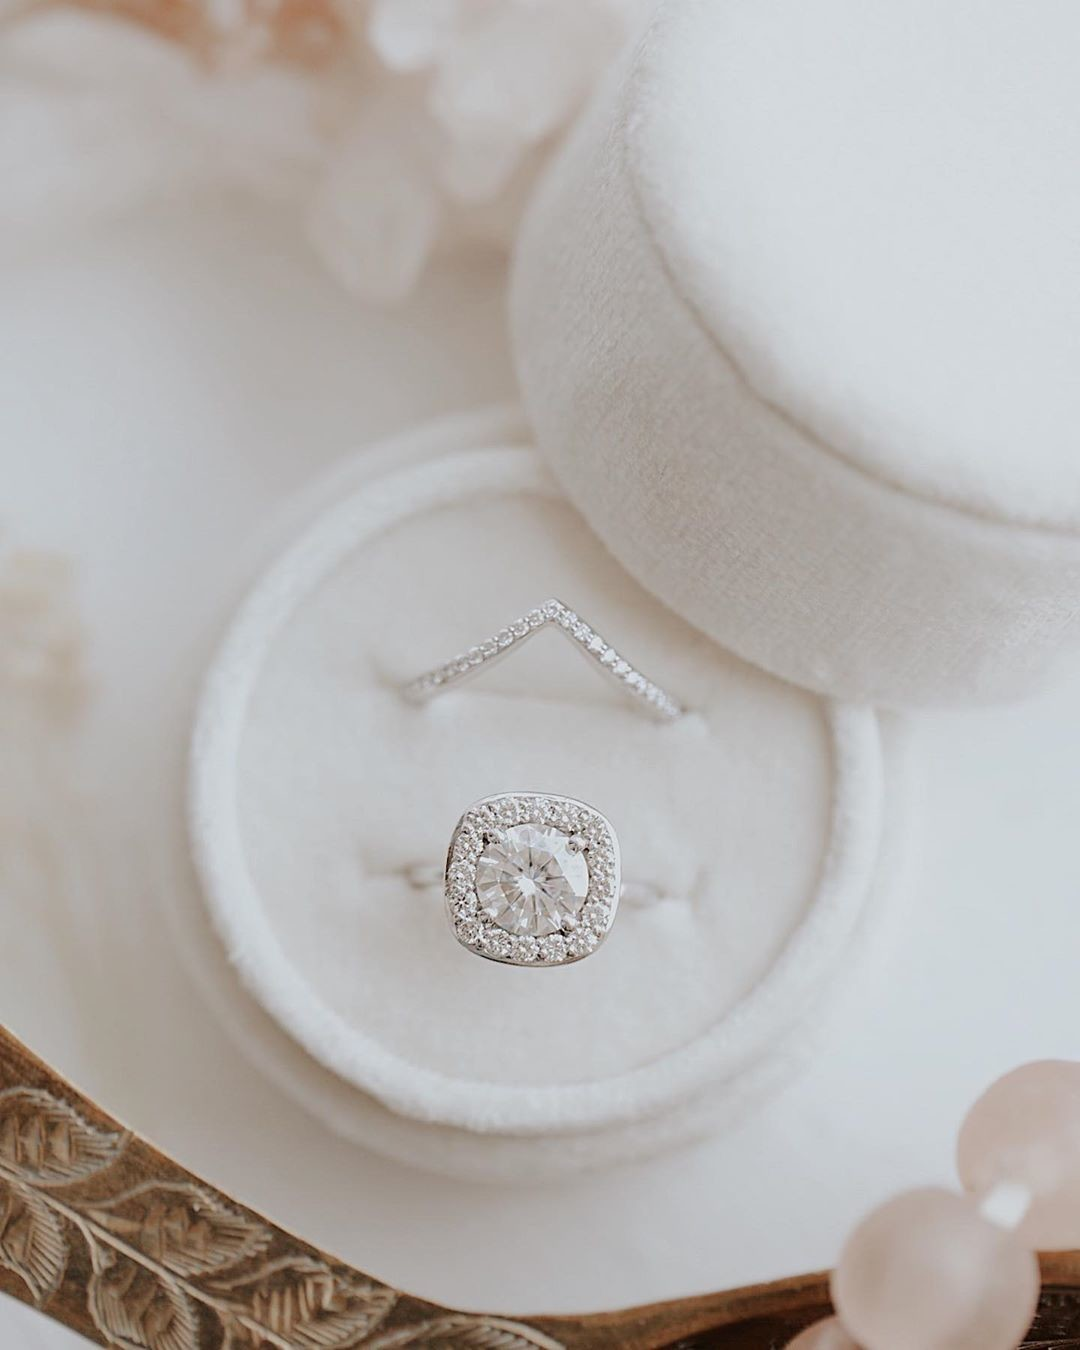 The Peyton ring looking like a dream in 14k white gold accompanied by a dainty diamond tracer band sitting pretty in our brand new